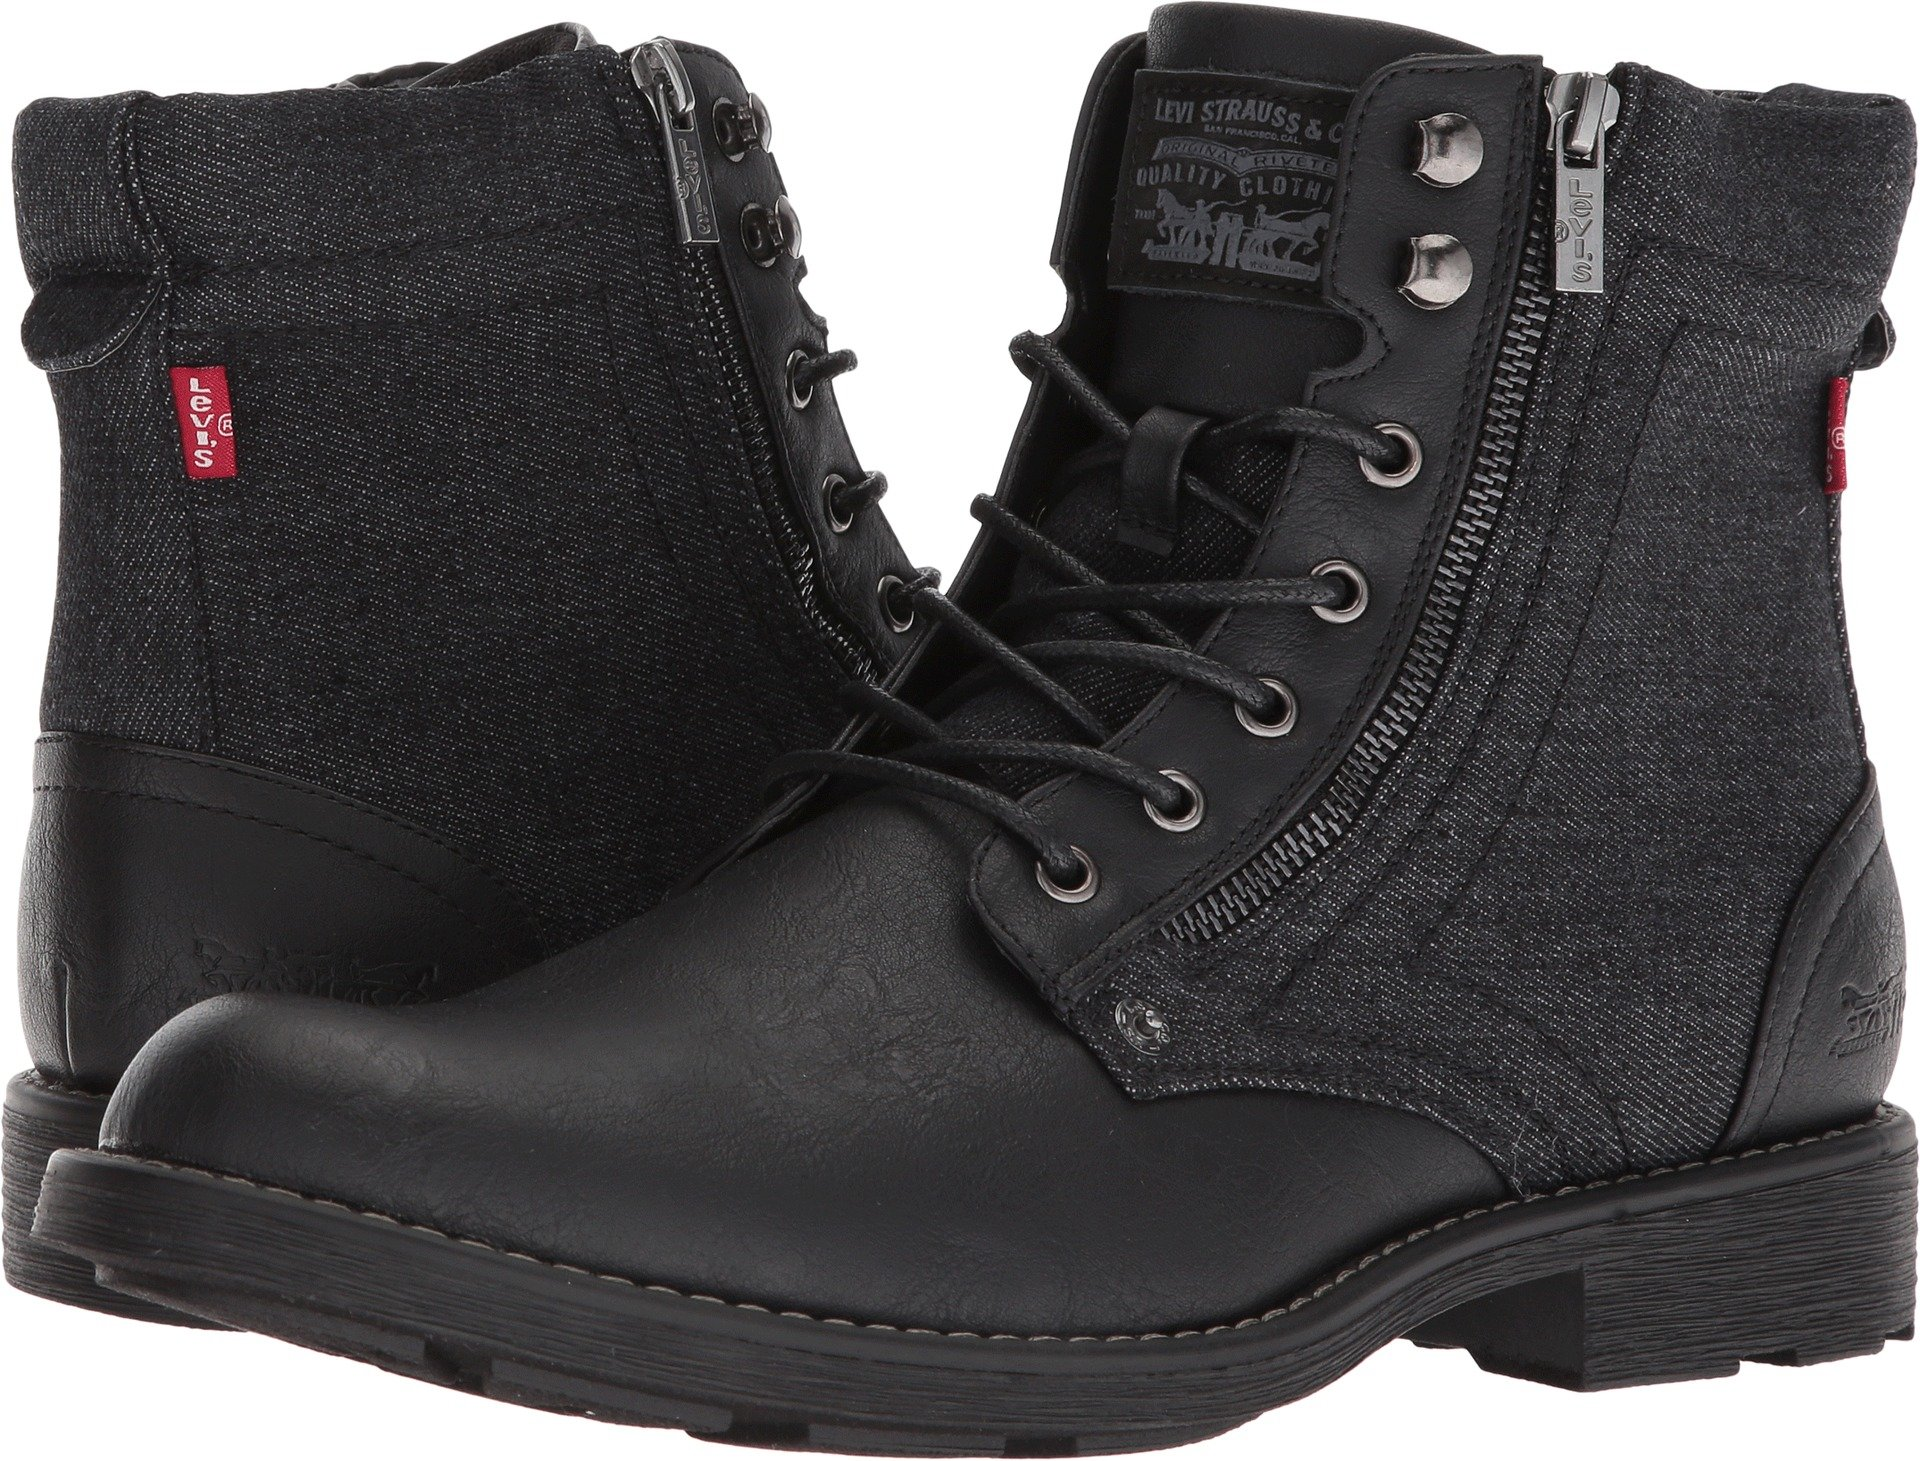 Levi's Shoes Men's Jacoby Denim Black Monochrome 10.5 D US